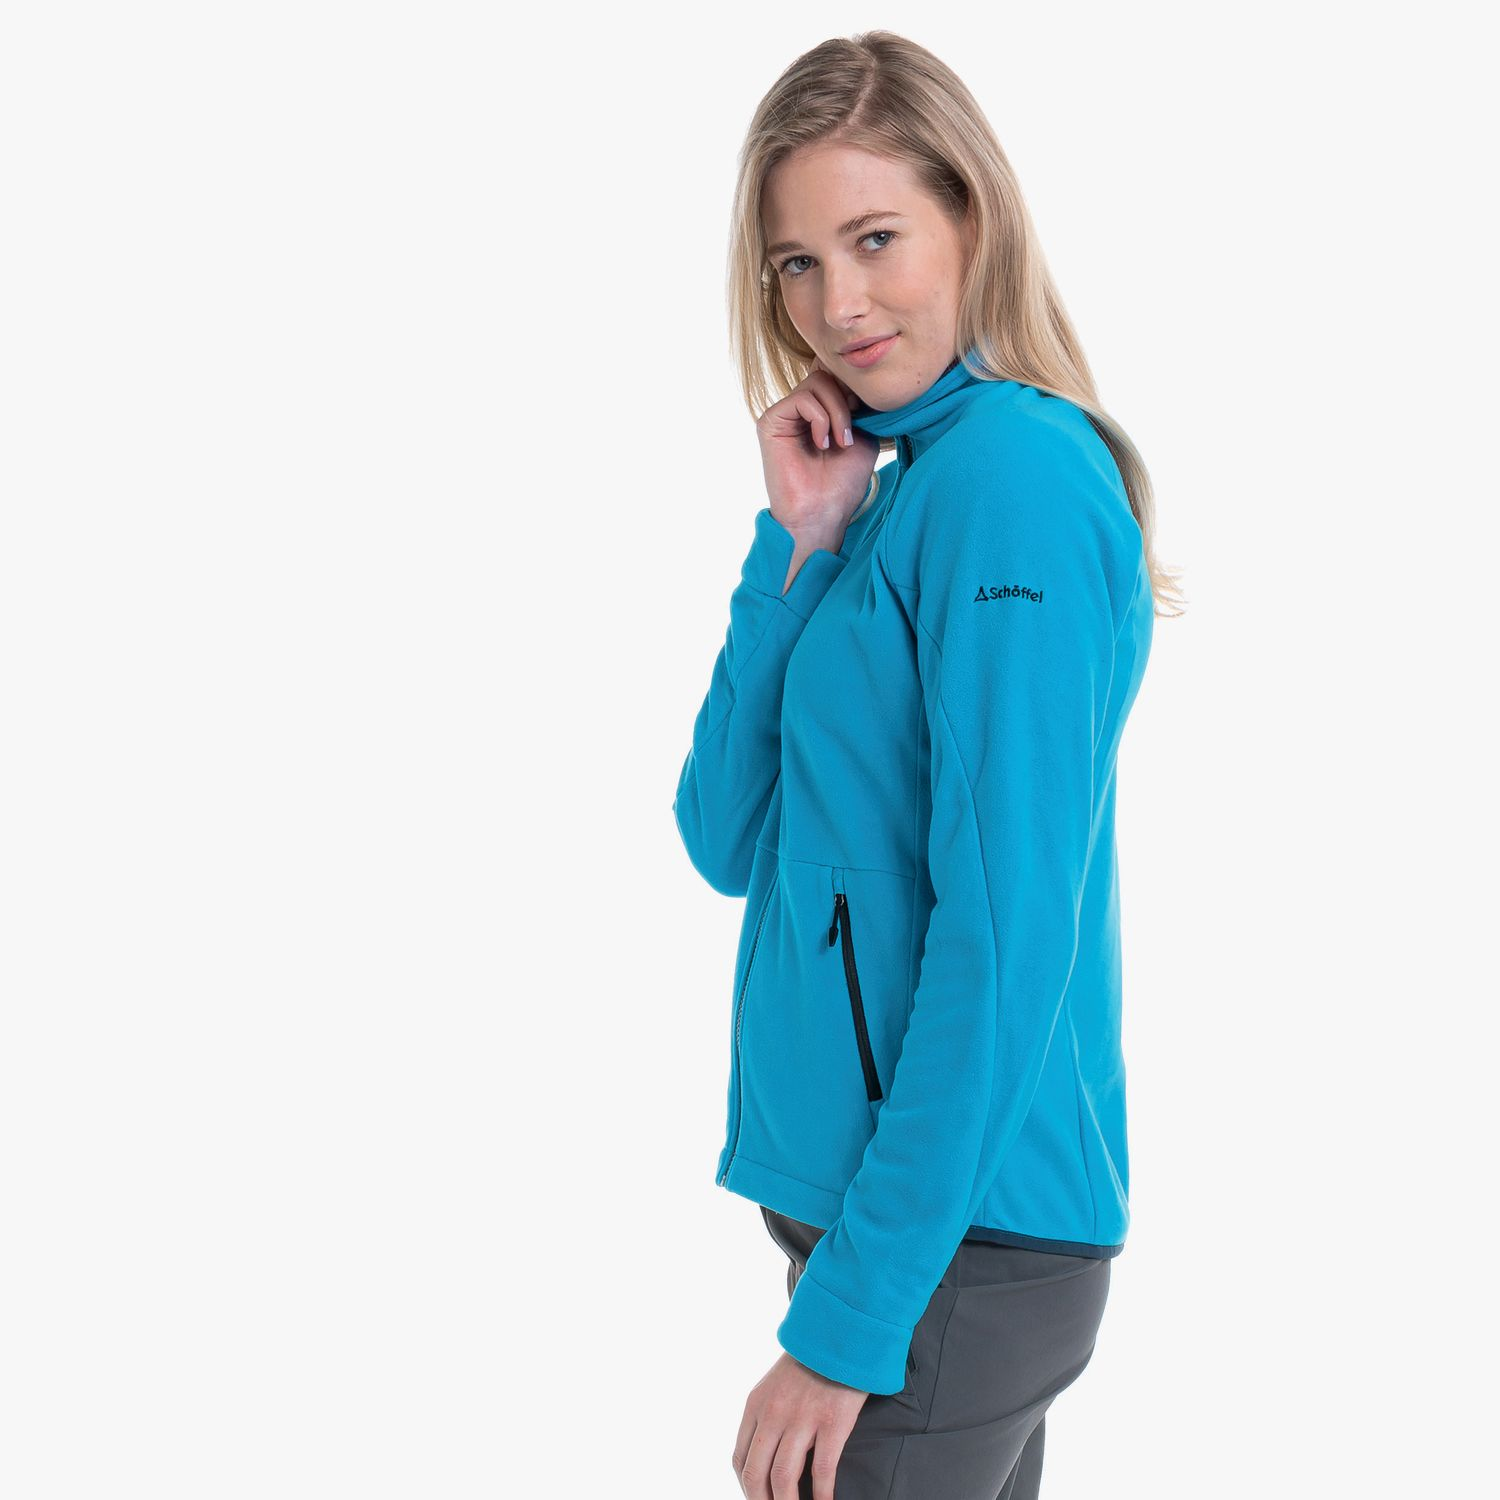 ZipIn! Fleece Cherpai L